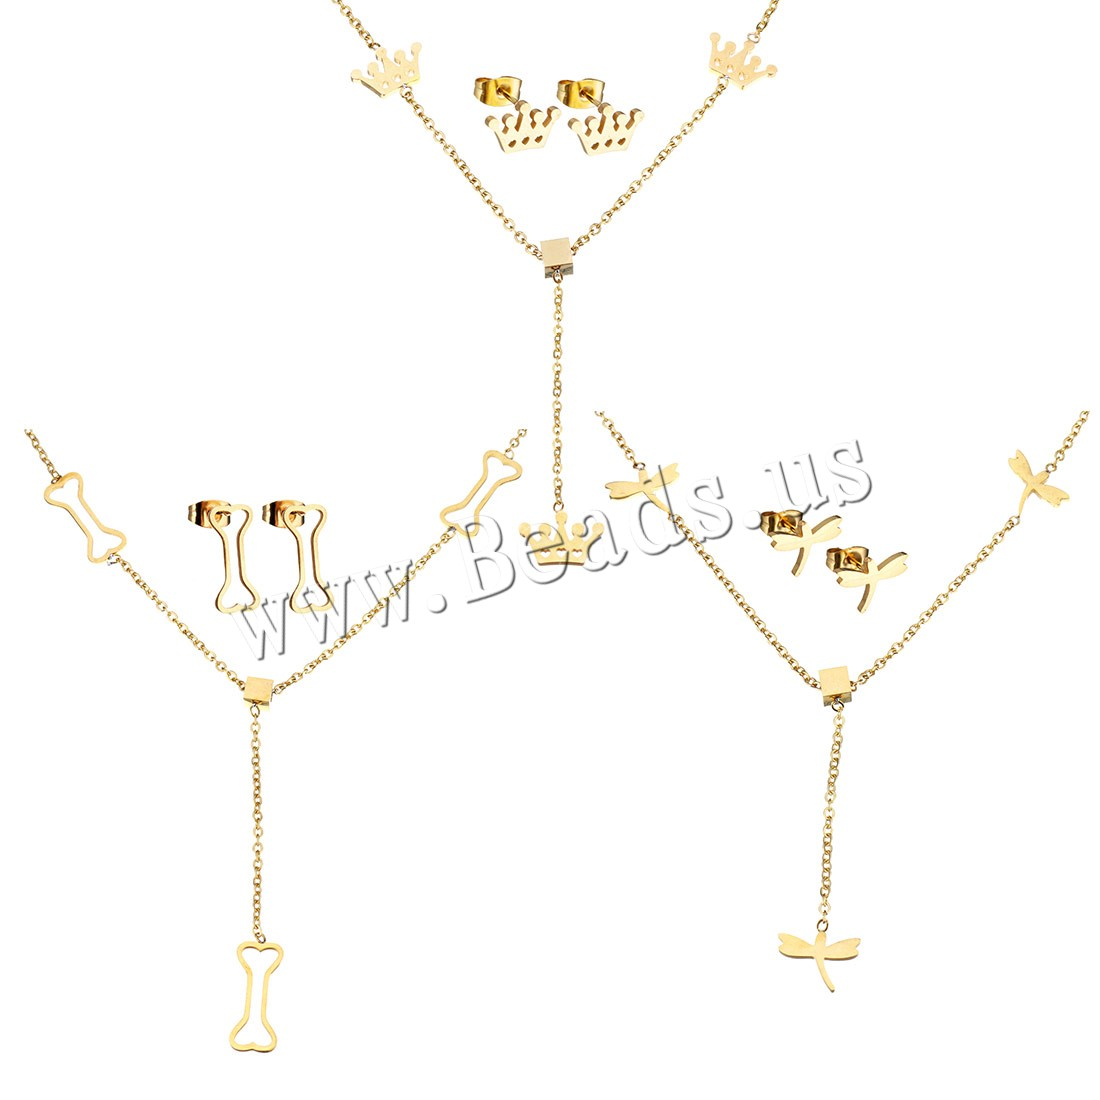 Buy Stainless Steel Jewelry Set earring & necklace 2Inch extender chain gold color plated oval chain & different styles choice & woman Length:Approx 17 Inch 5Sets/Lot Sold Lot